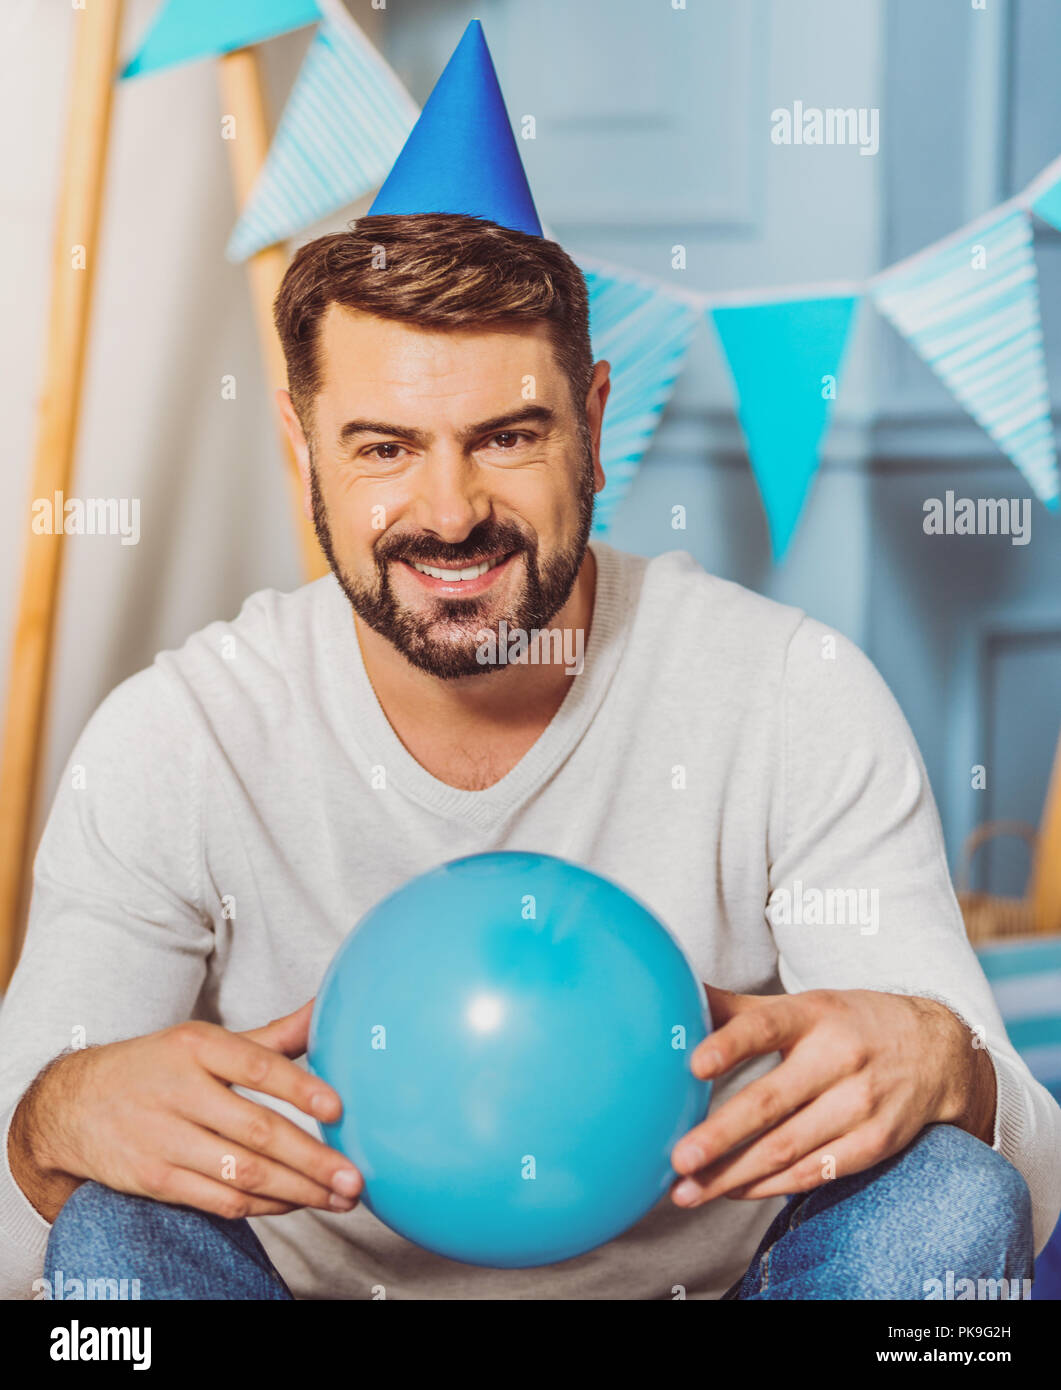 Handsome happy man monkeying with balloon - Stock Image